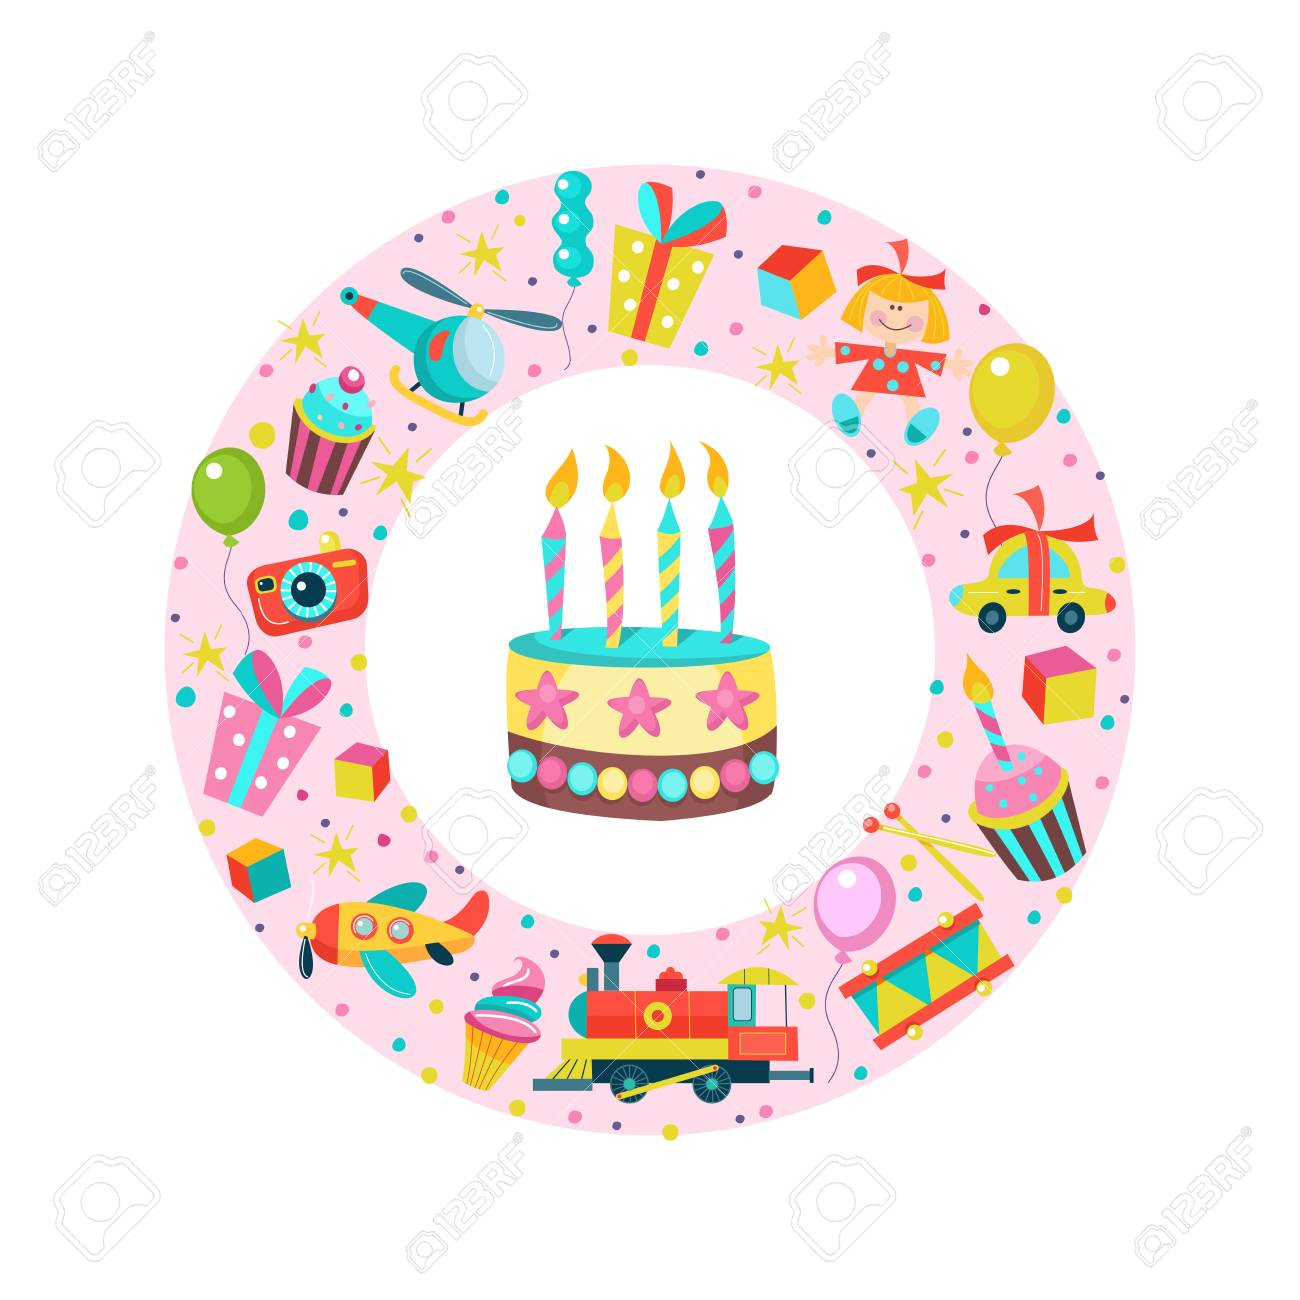 Happy Birthday Greeting Cards Set Of Vector Cliparts Oriented In A Circle Toys